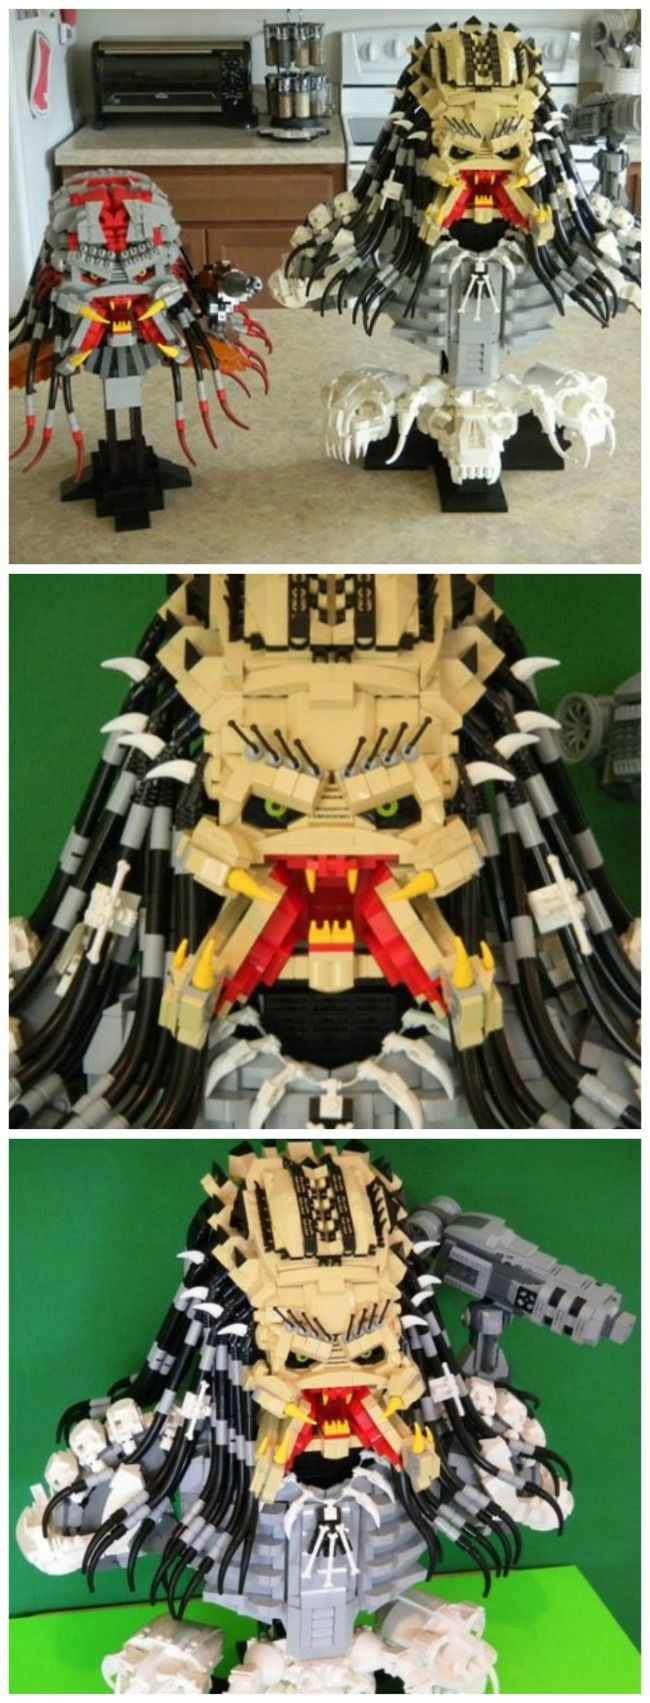 Predator alien made from lego blocks